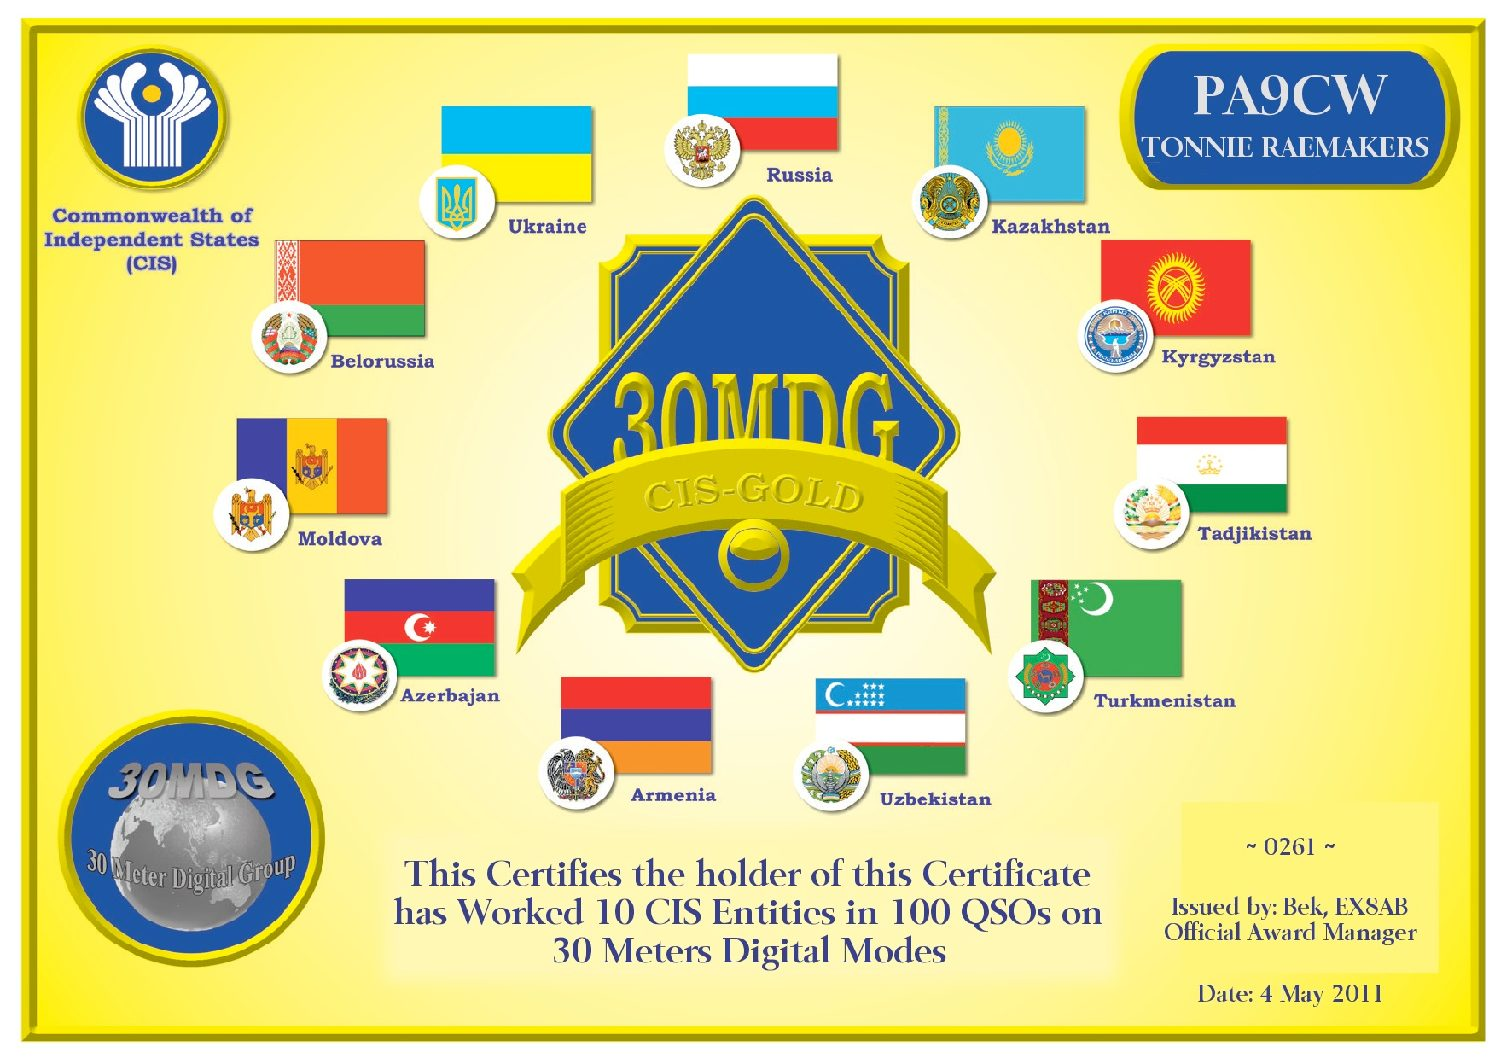 Pa9Cw-30Mdg-Cis-Gold-Certificate